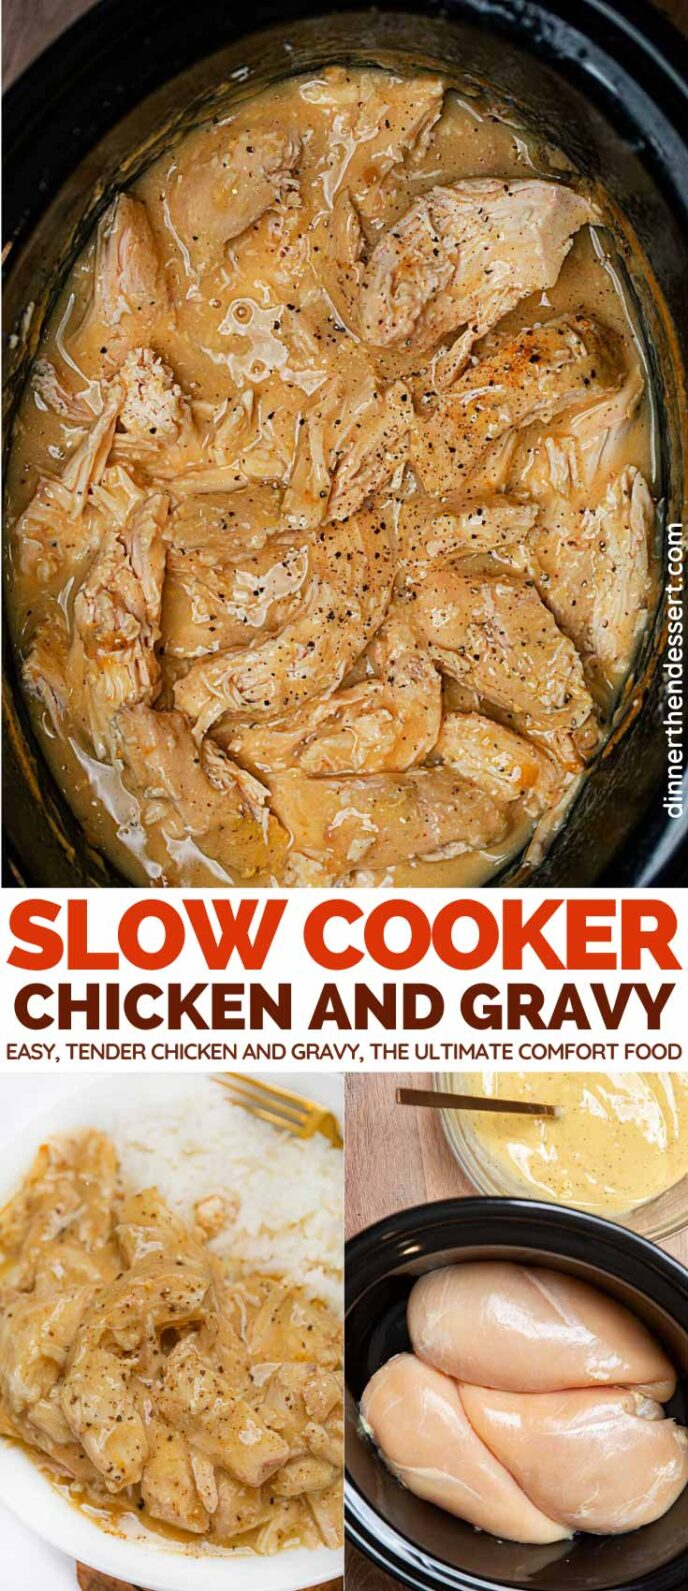 Crockpot Chicken and Gravy collage